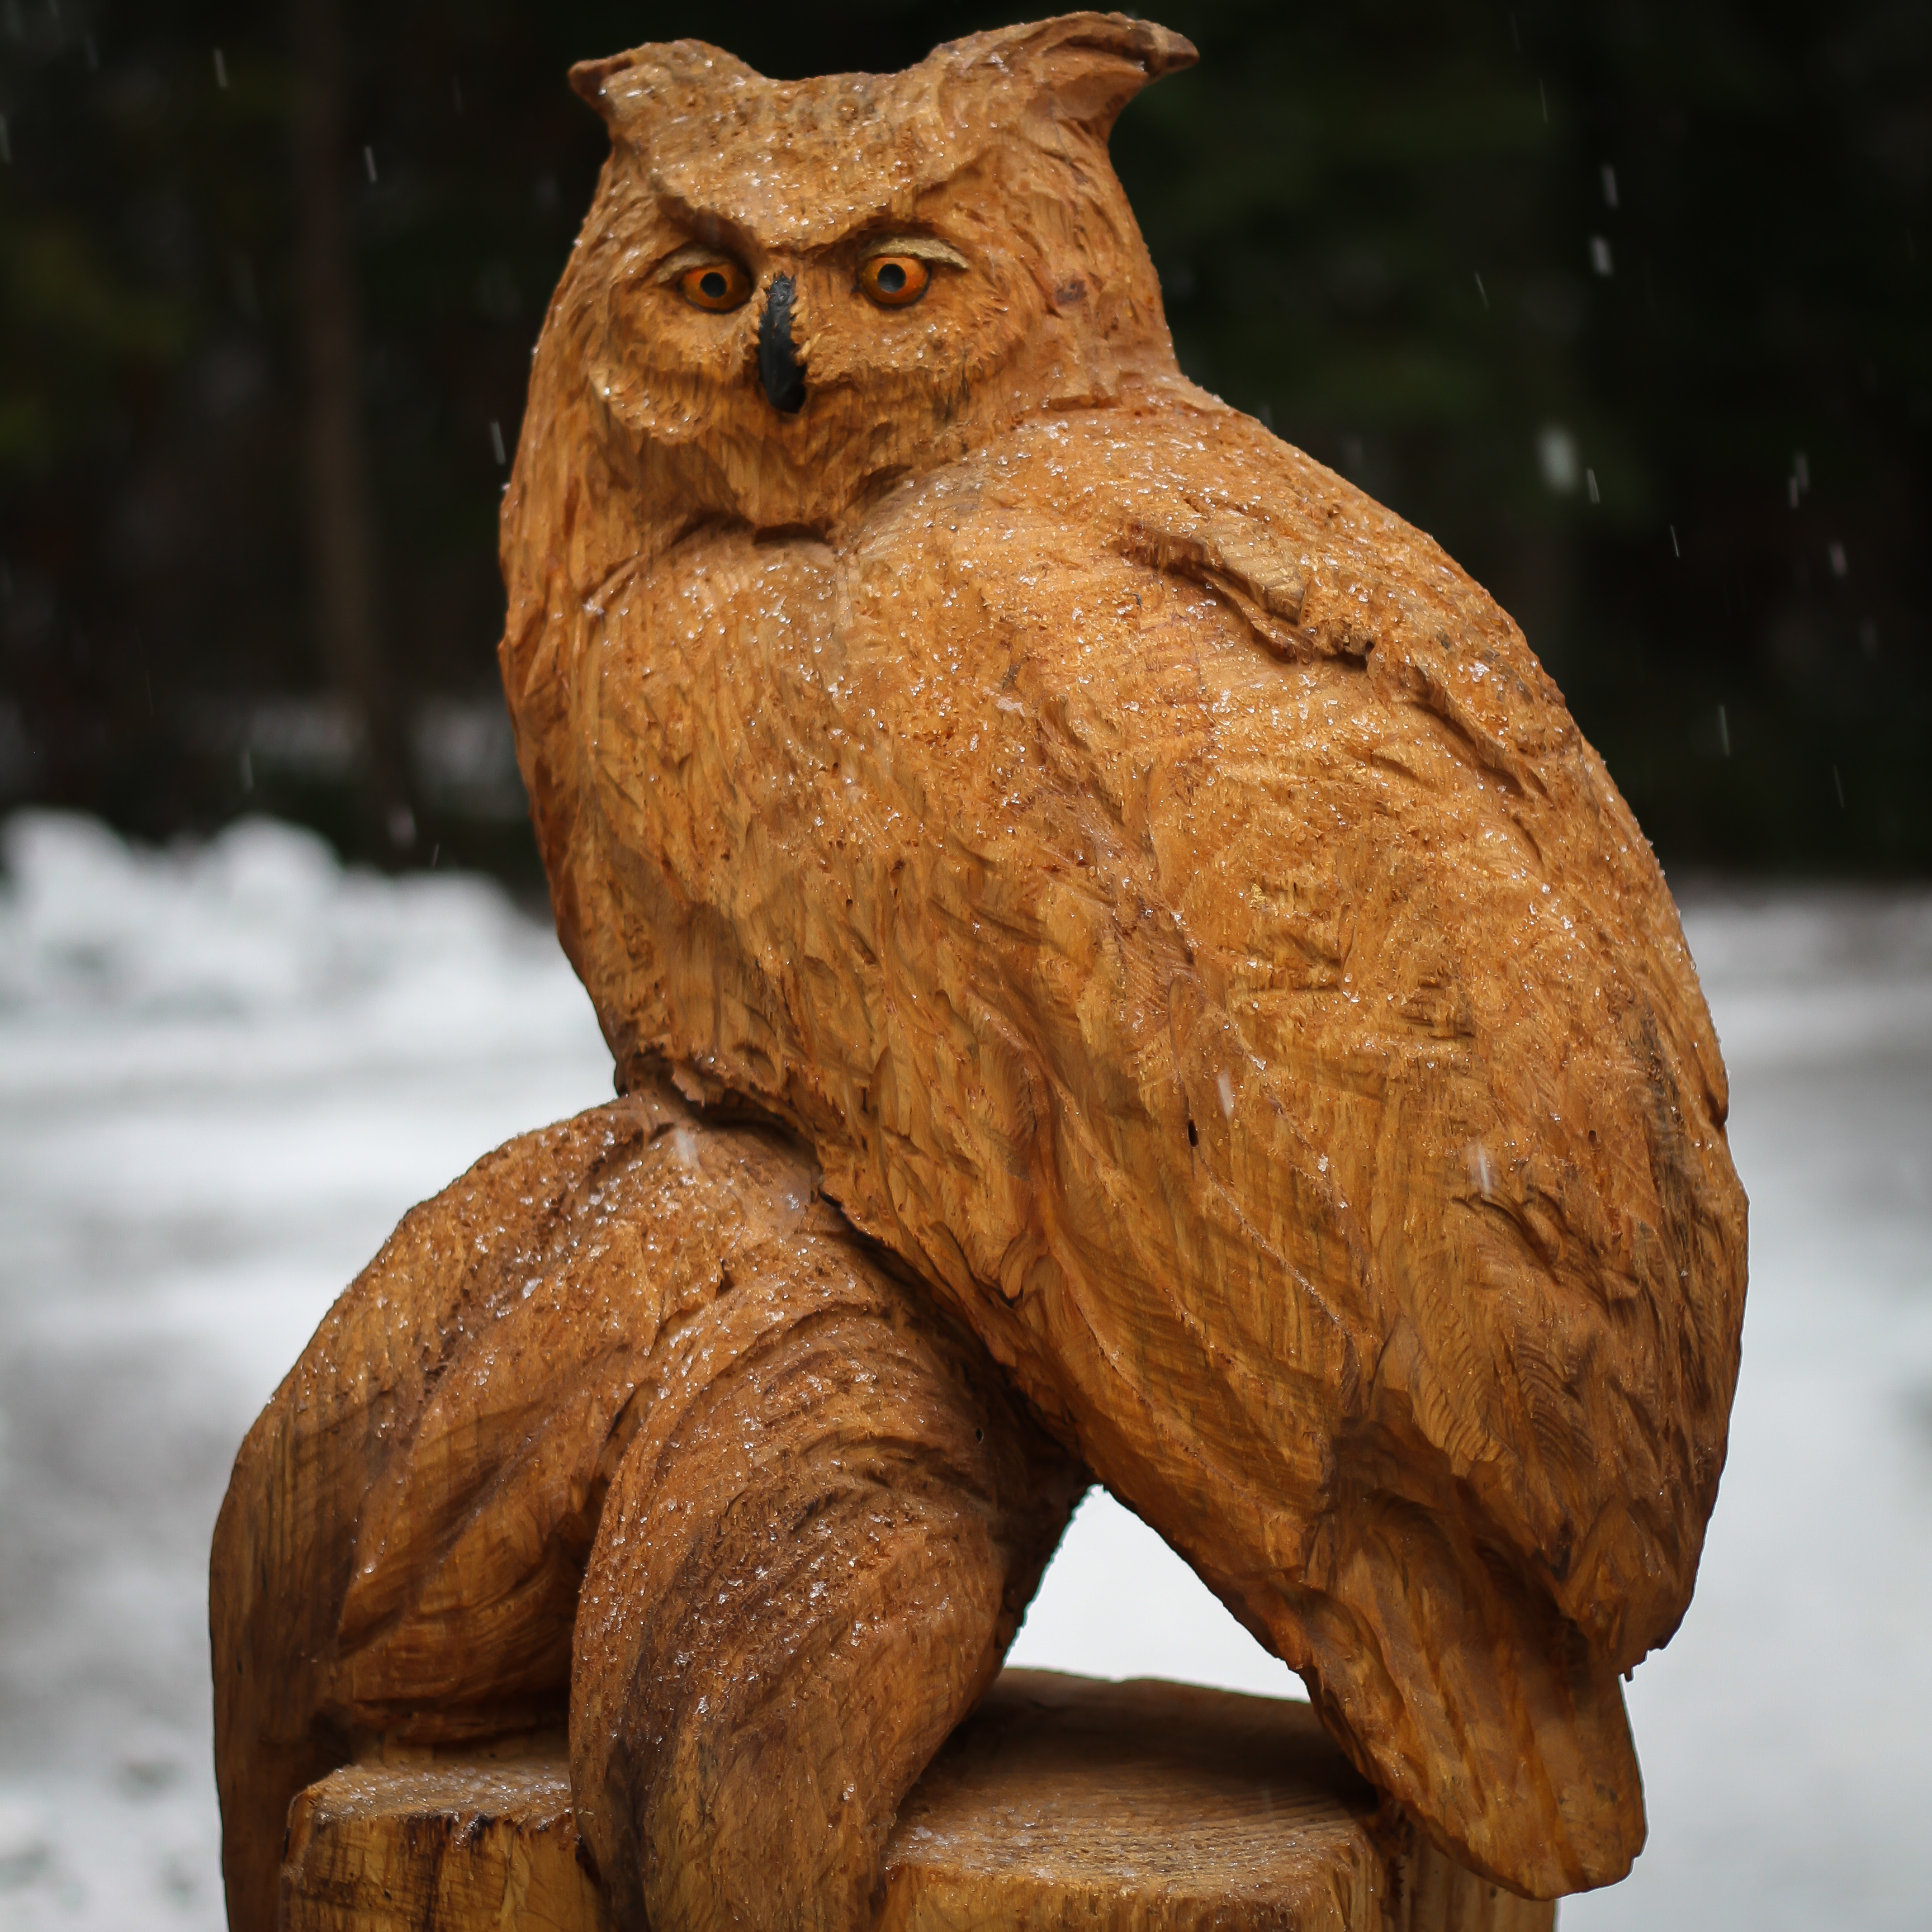 Chainsaw carving owl woodcarving barn owl garden sculpture